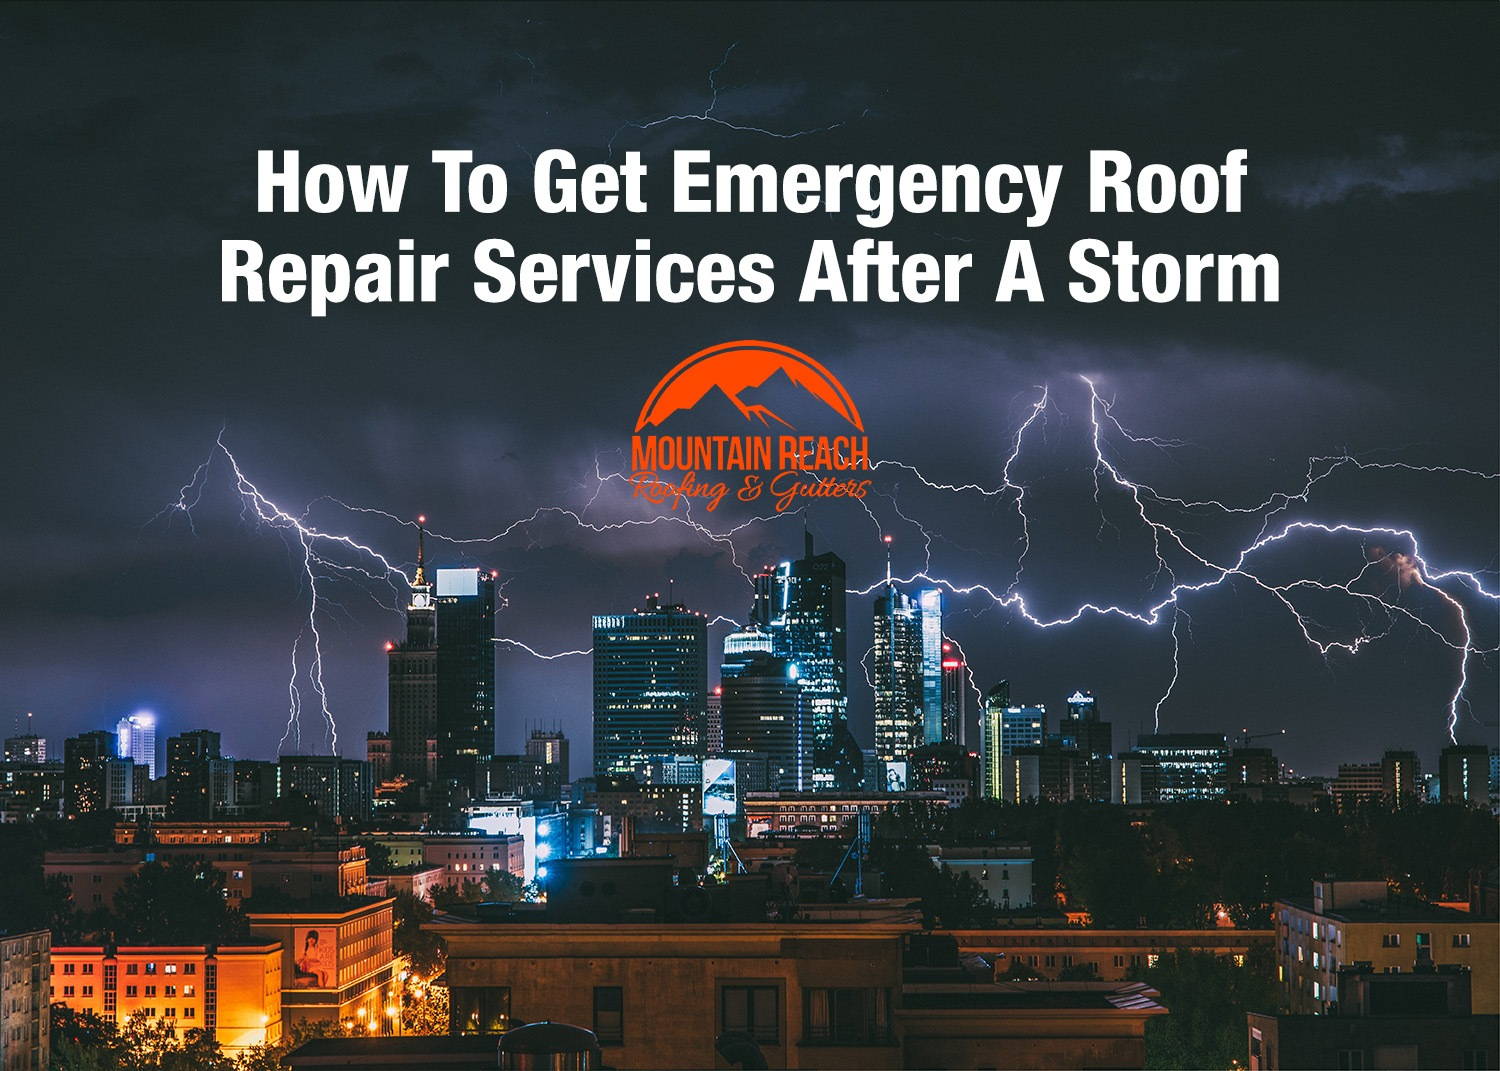 How To Get Emergency Roof Repair Services After A Storm